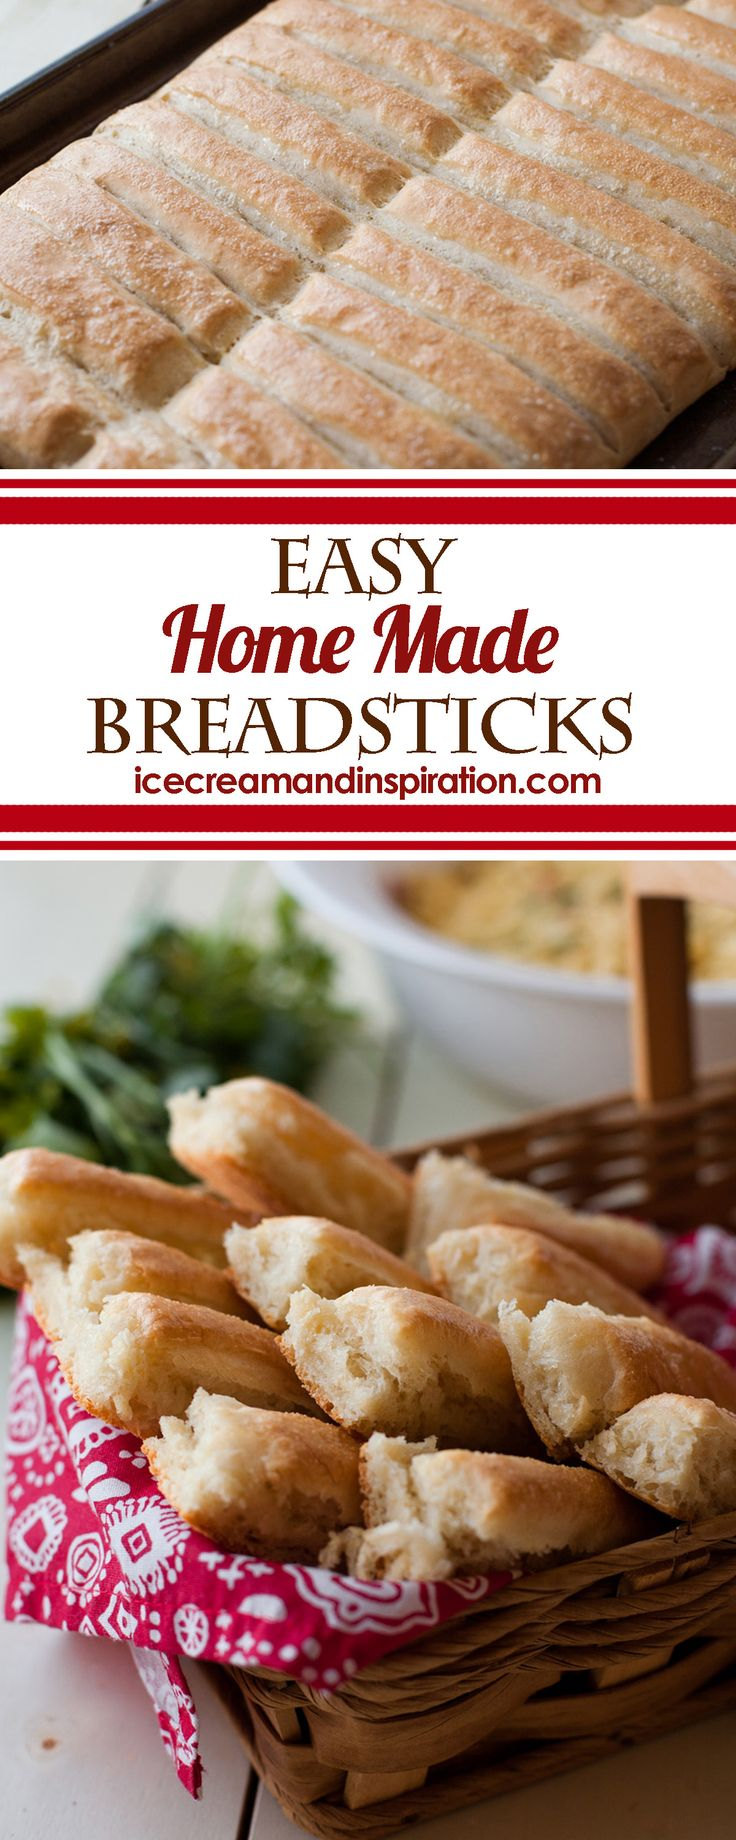 These Easy Home Made Breadsticks can be piping hot and on your table in just an hour. They're perfect breadsticks that your whole family will love!